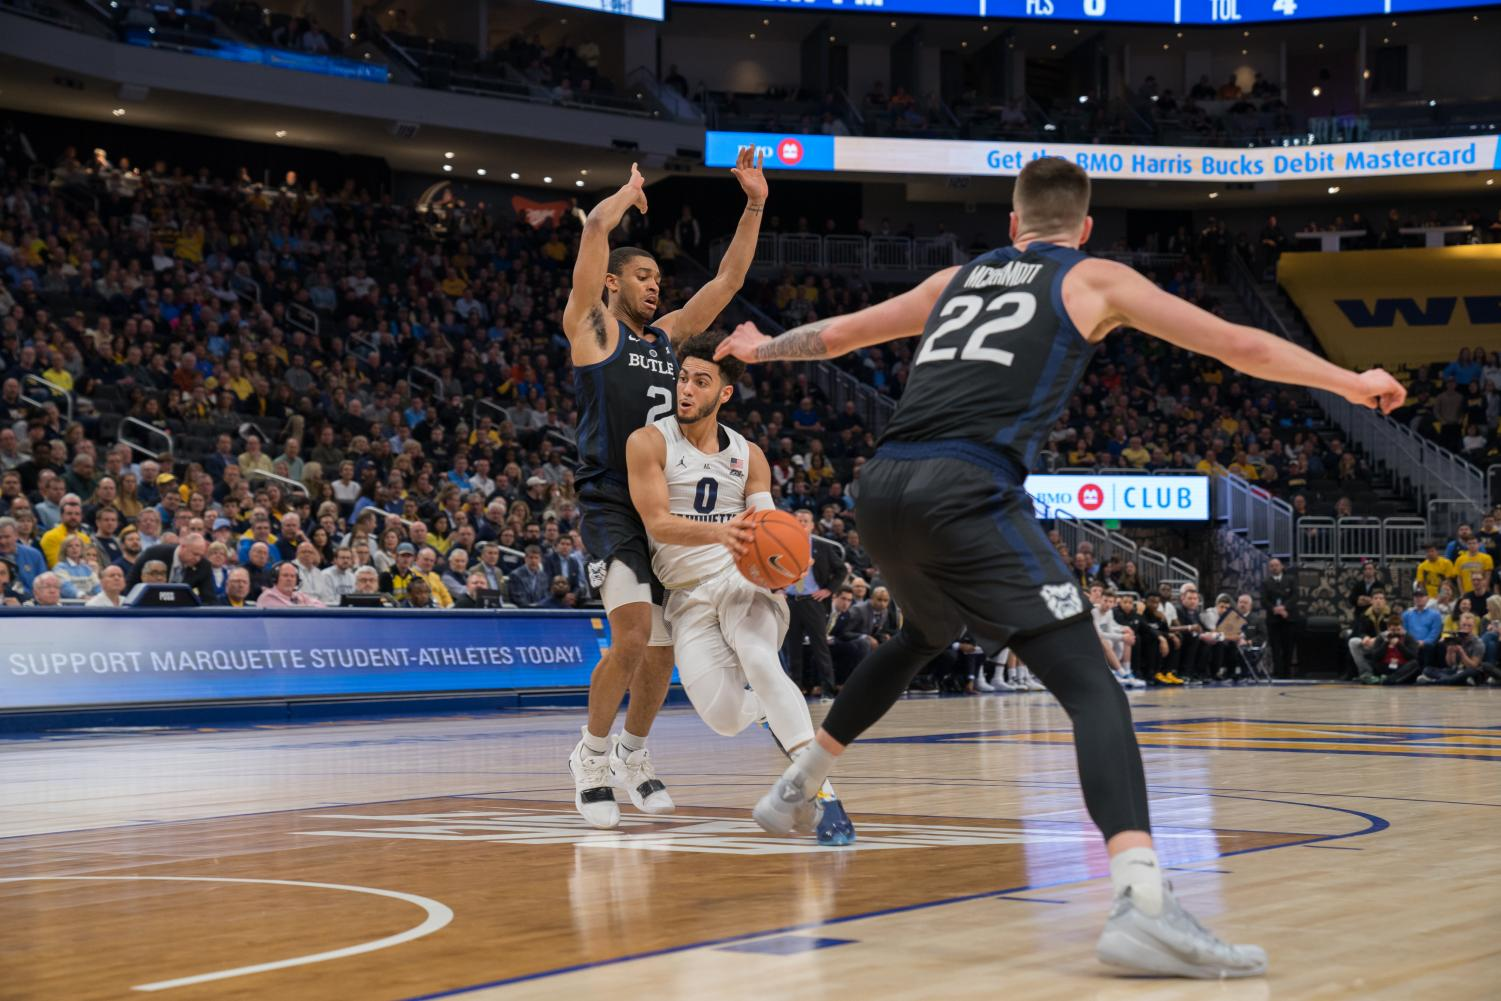 Markus Howard (0) dribbles in Marquette's 79-69 win over Butler at Fiserv Forum Feb. 20, 2019.